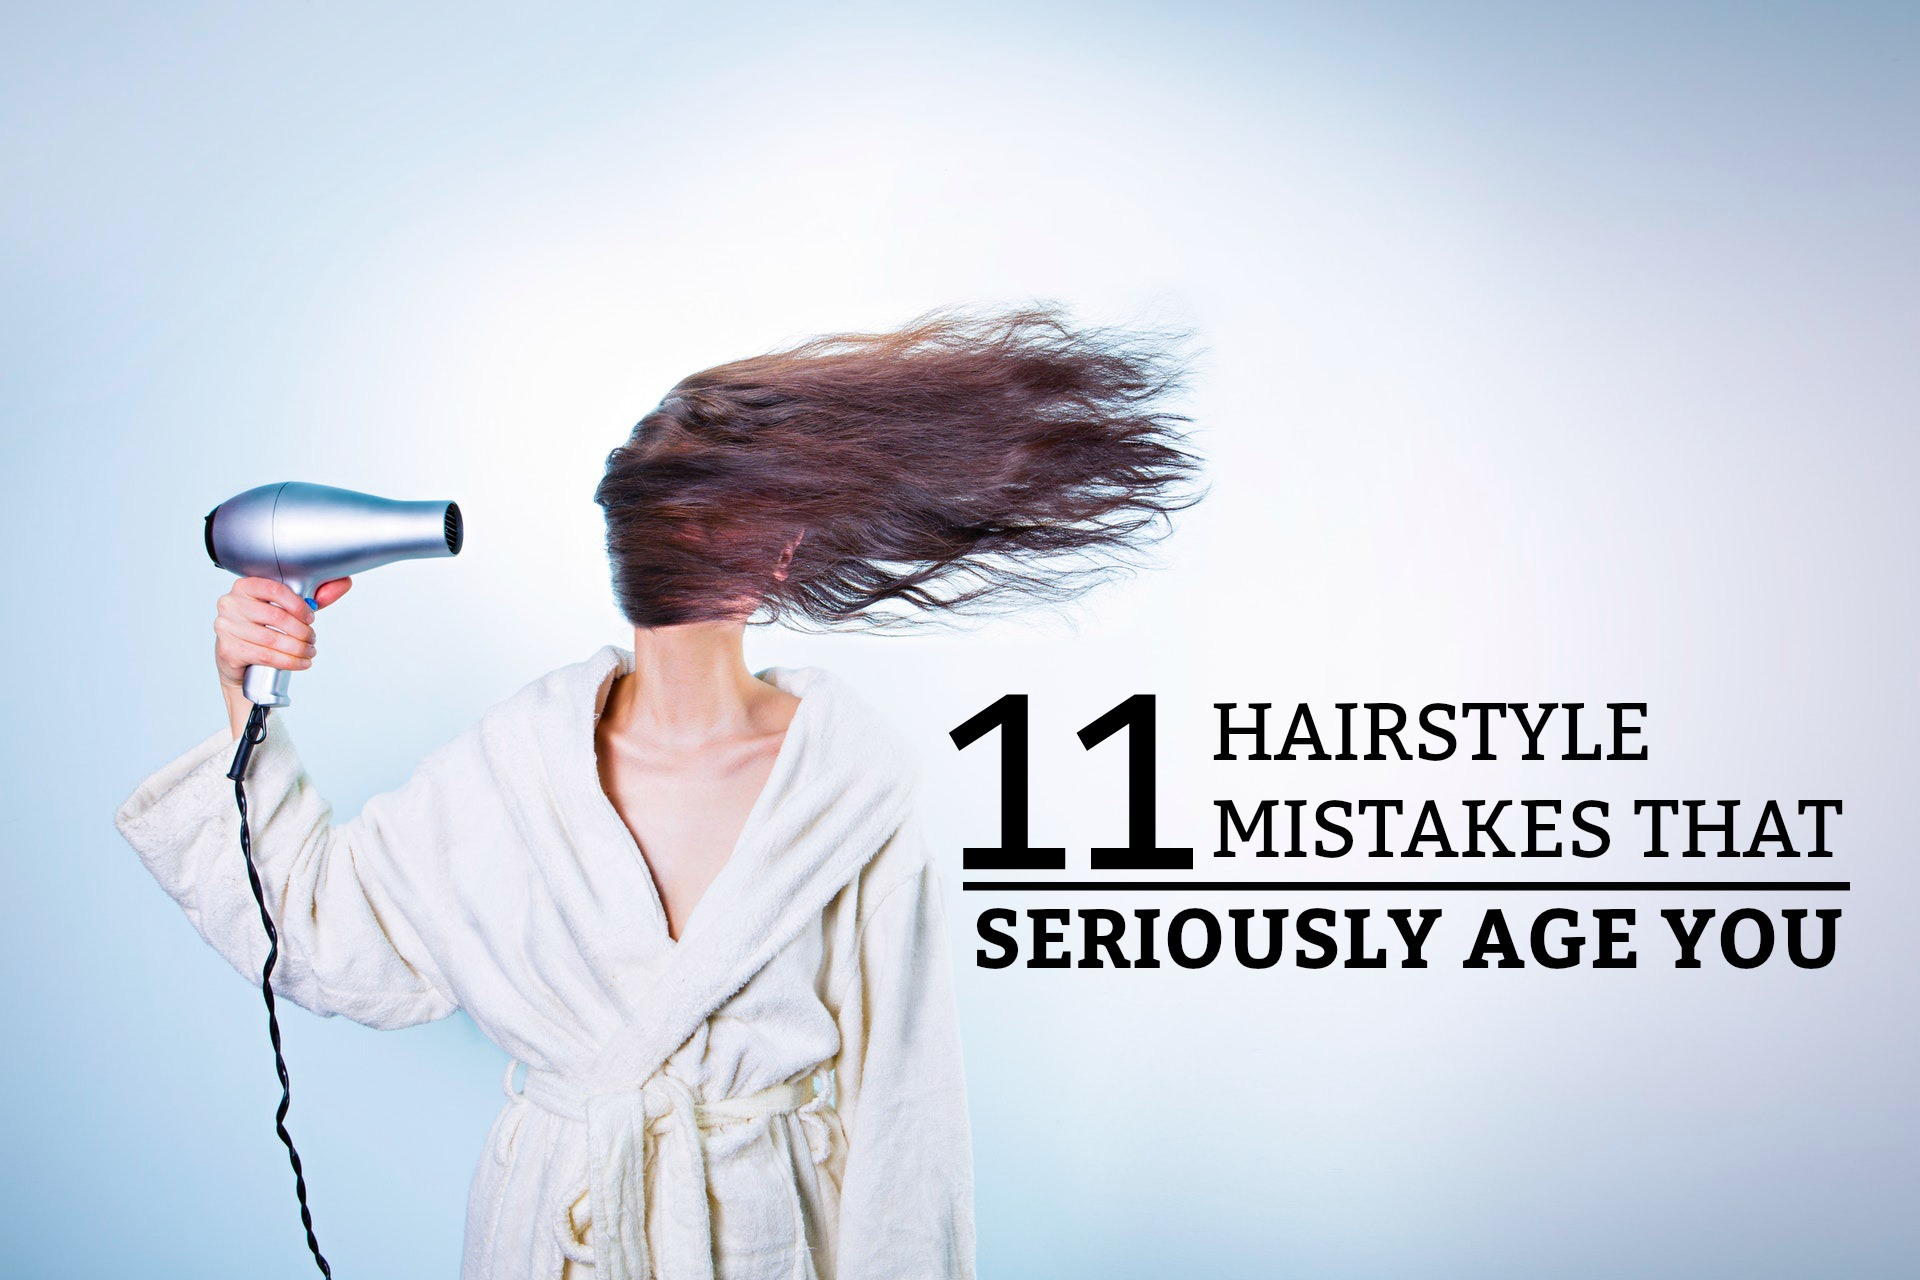 11 Hairstyle Mistakes That Seriously Age You - a practical guide on what hairstyle facts you need to know to stay up-to-date in your hairstyle choice. www.tradingaverage.com